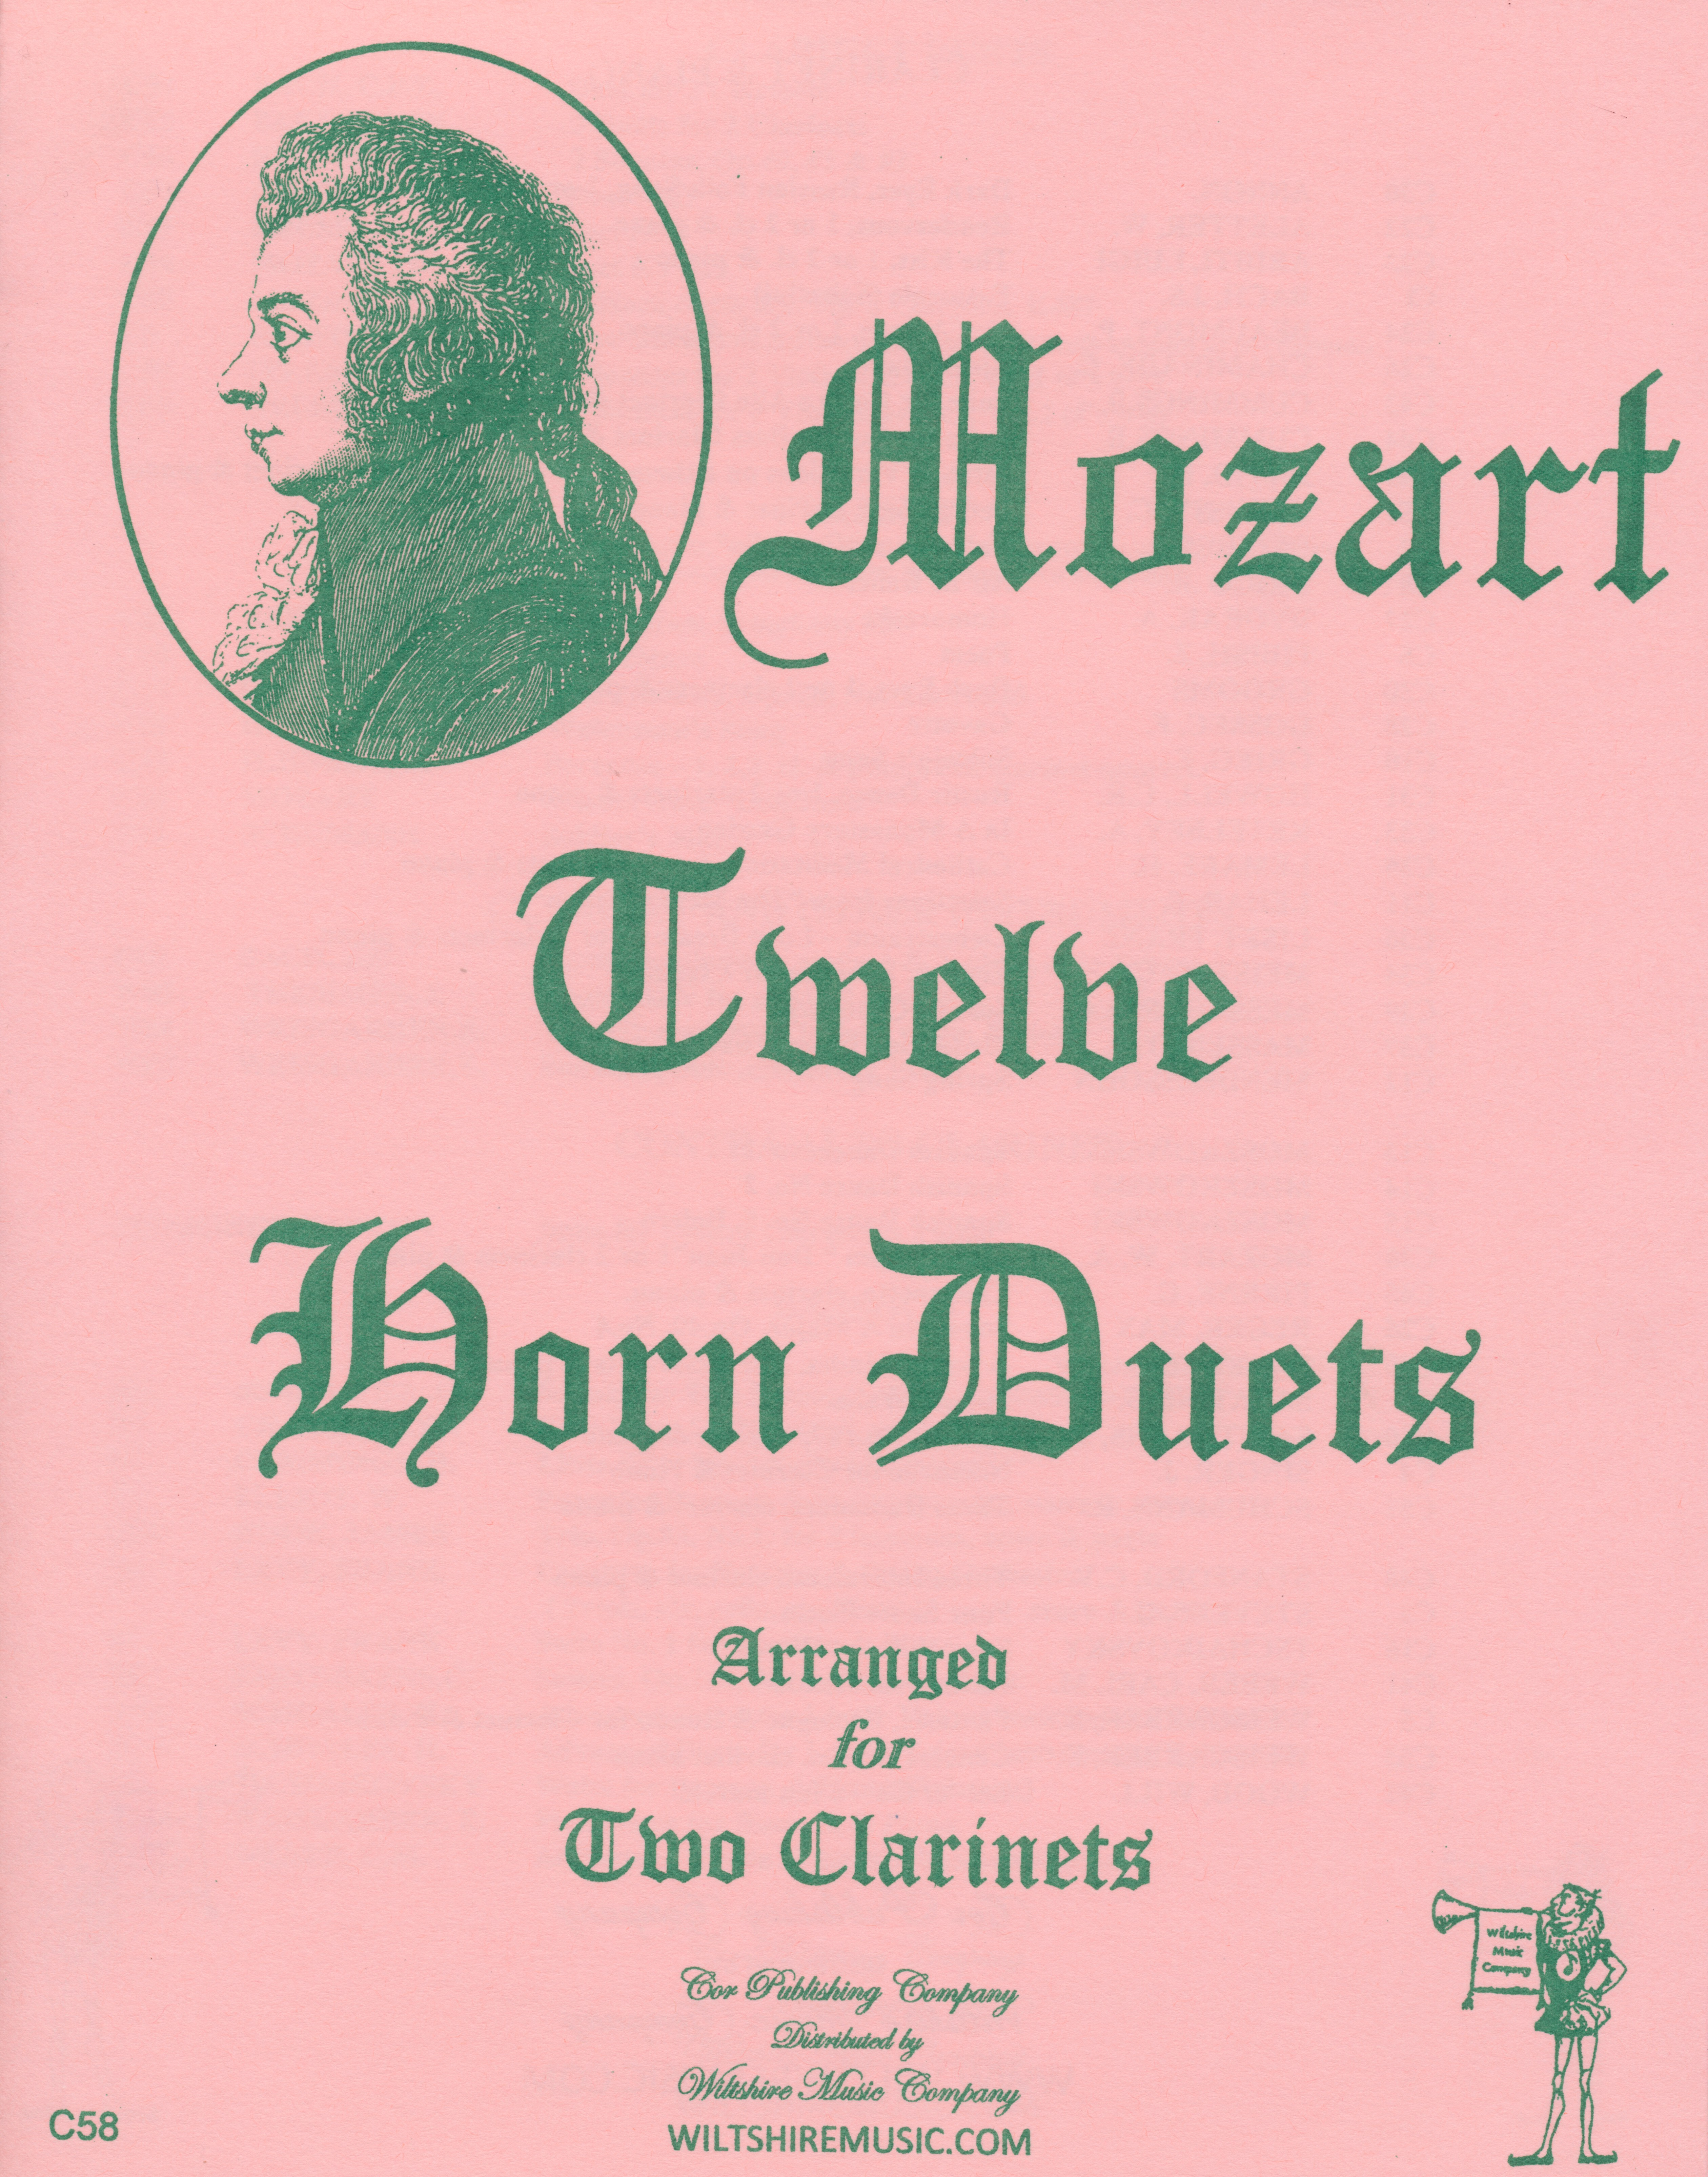 12 Horn Duets arr. for 2 Clarinets, W.A. Mozart